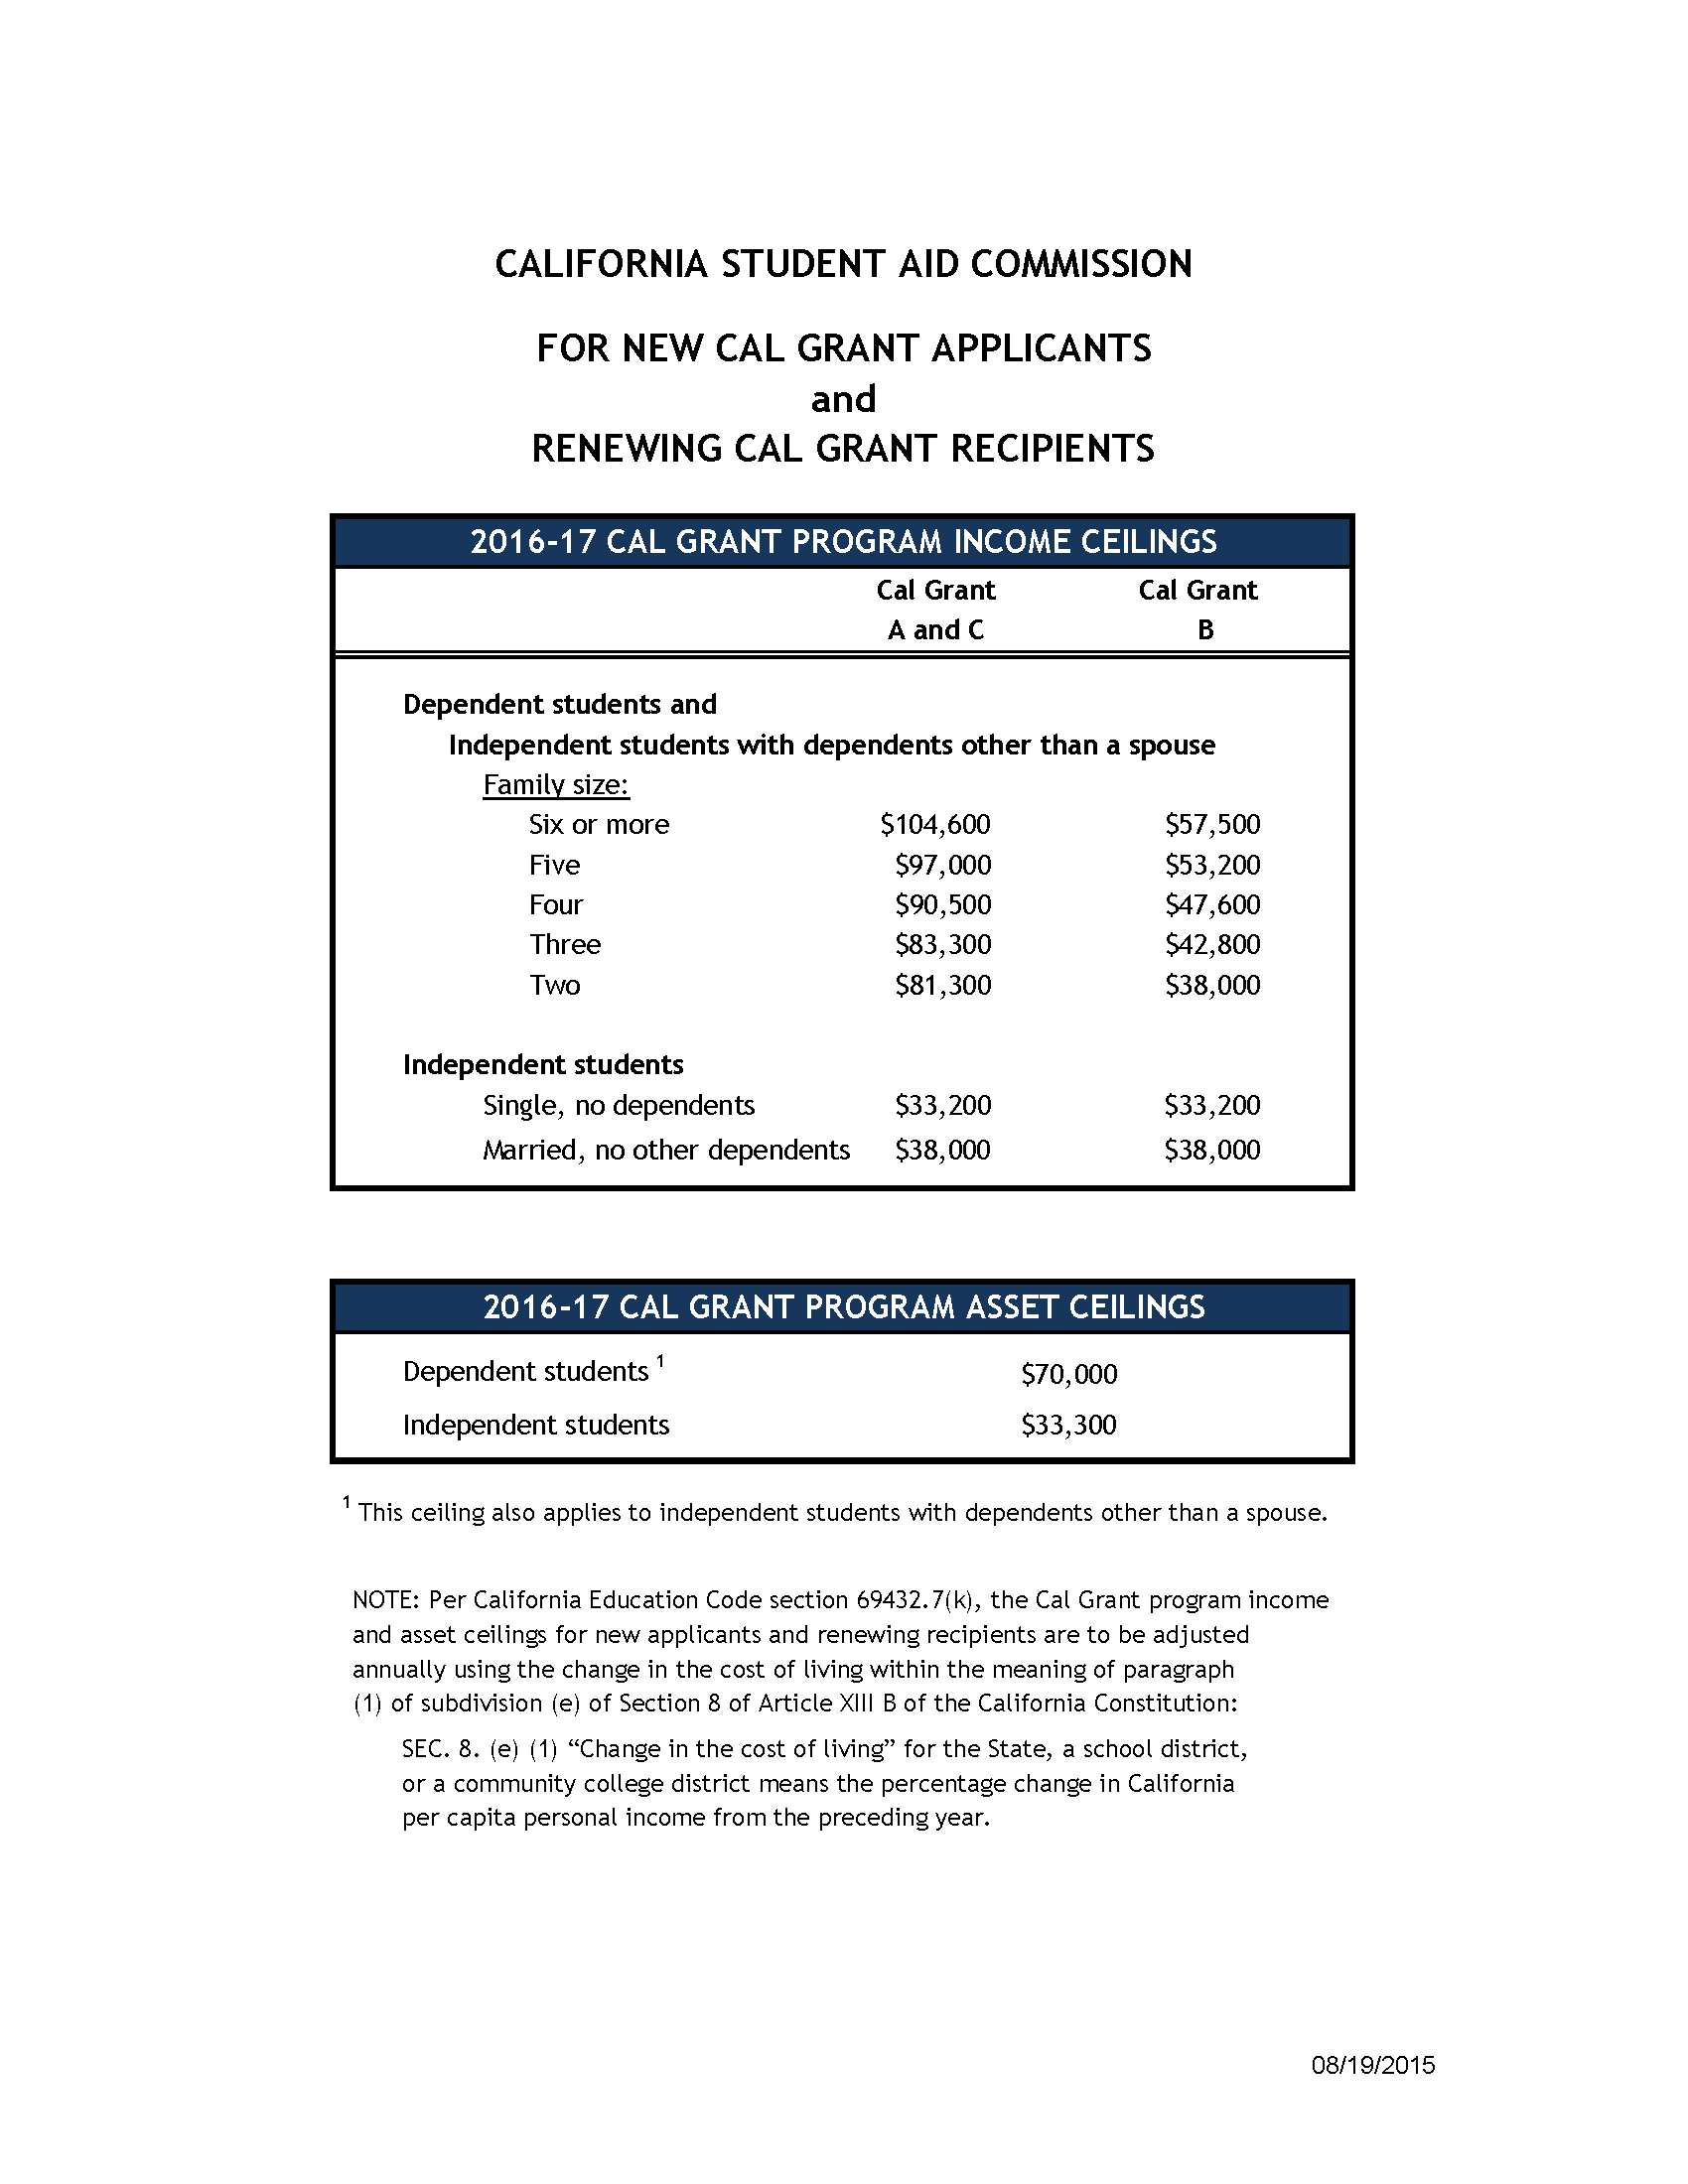 2016-17 Cal Grant Income and Asset Ceilings | College Planning Source